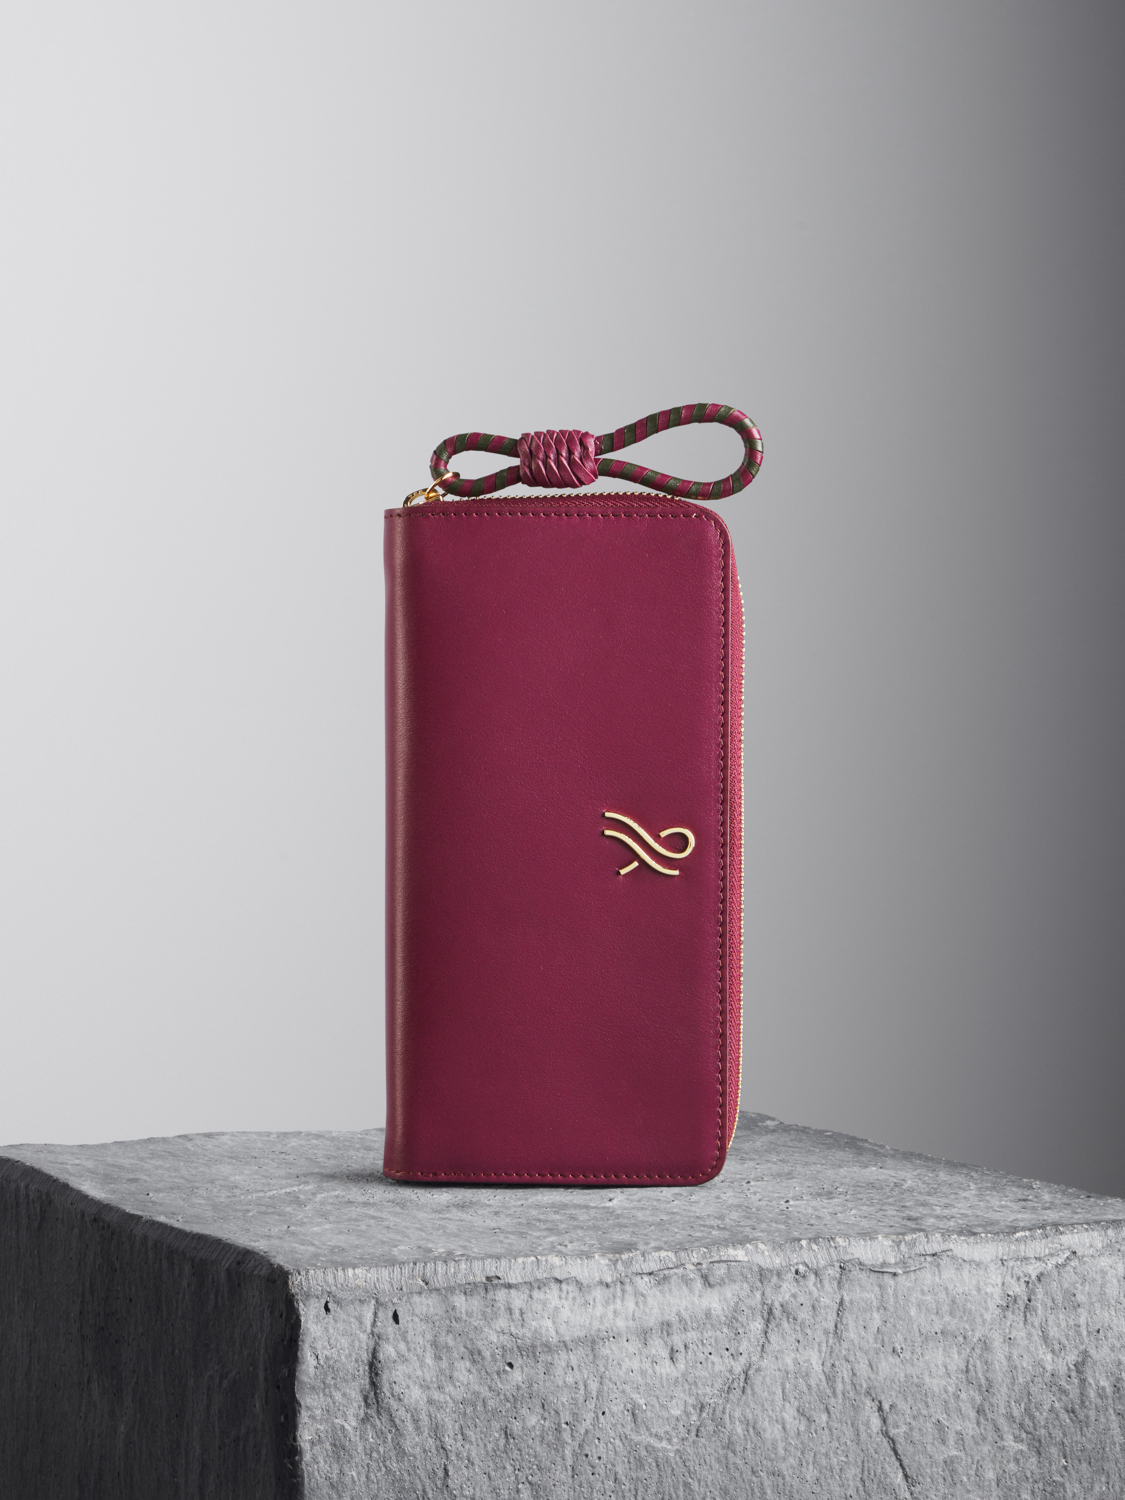 Oxblood Leather Wallet with oxblood and kale woven puller Illicia